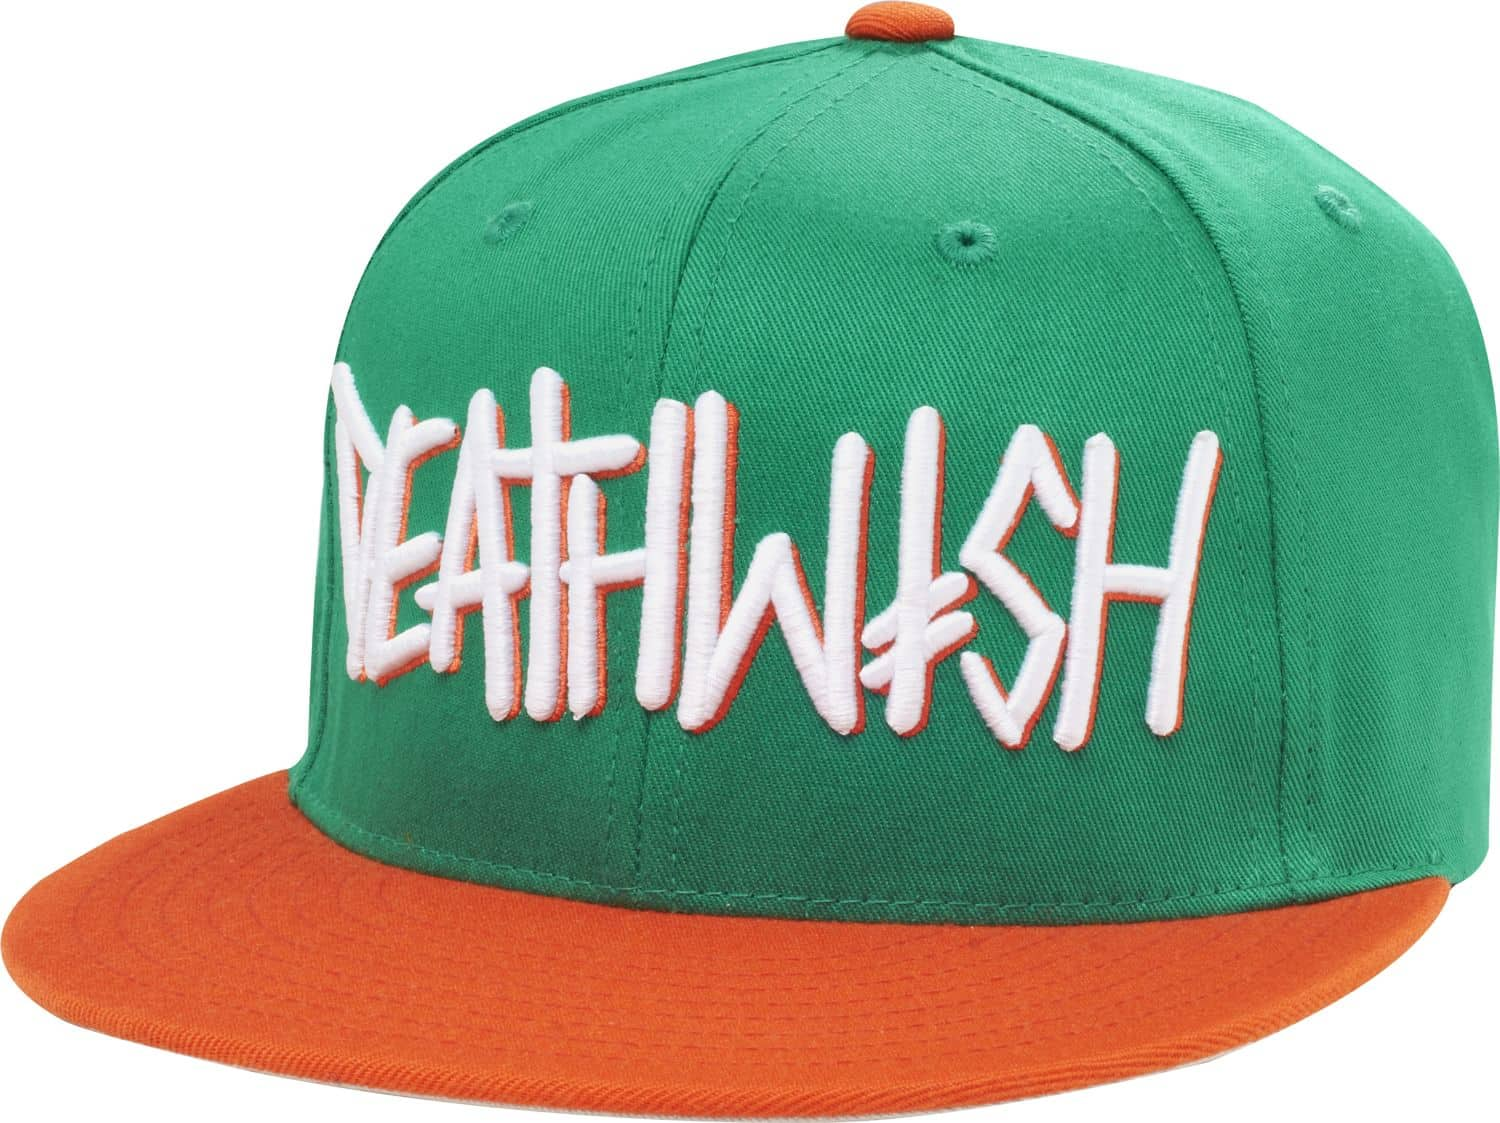 deathwish hoodies sweaters deathwish skateboard parts you might also